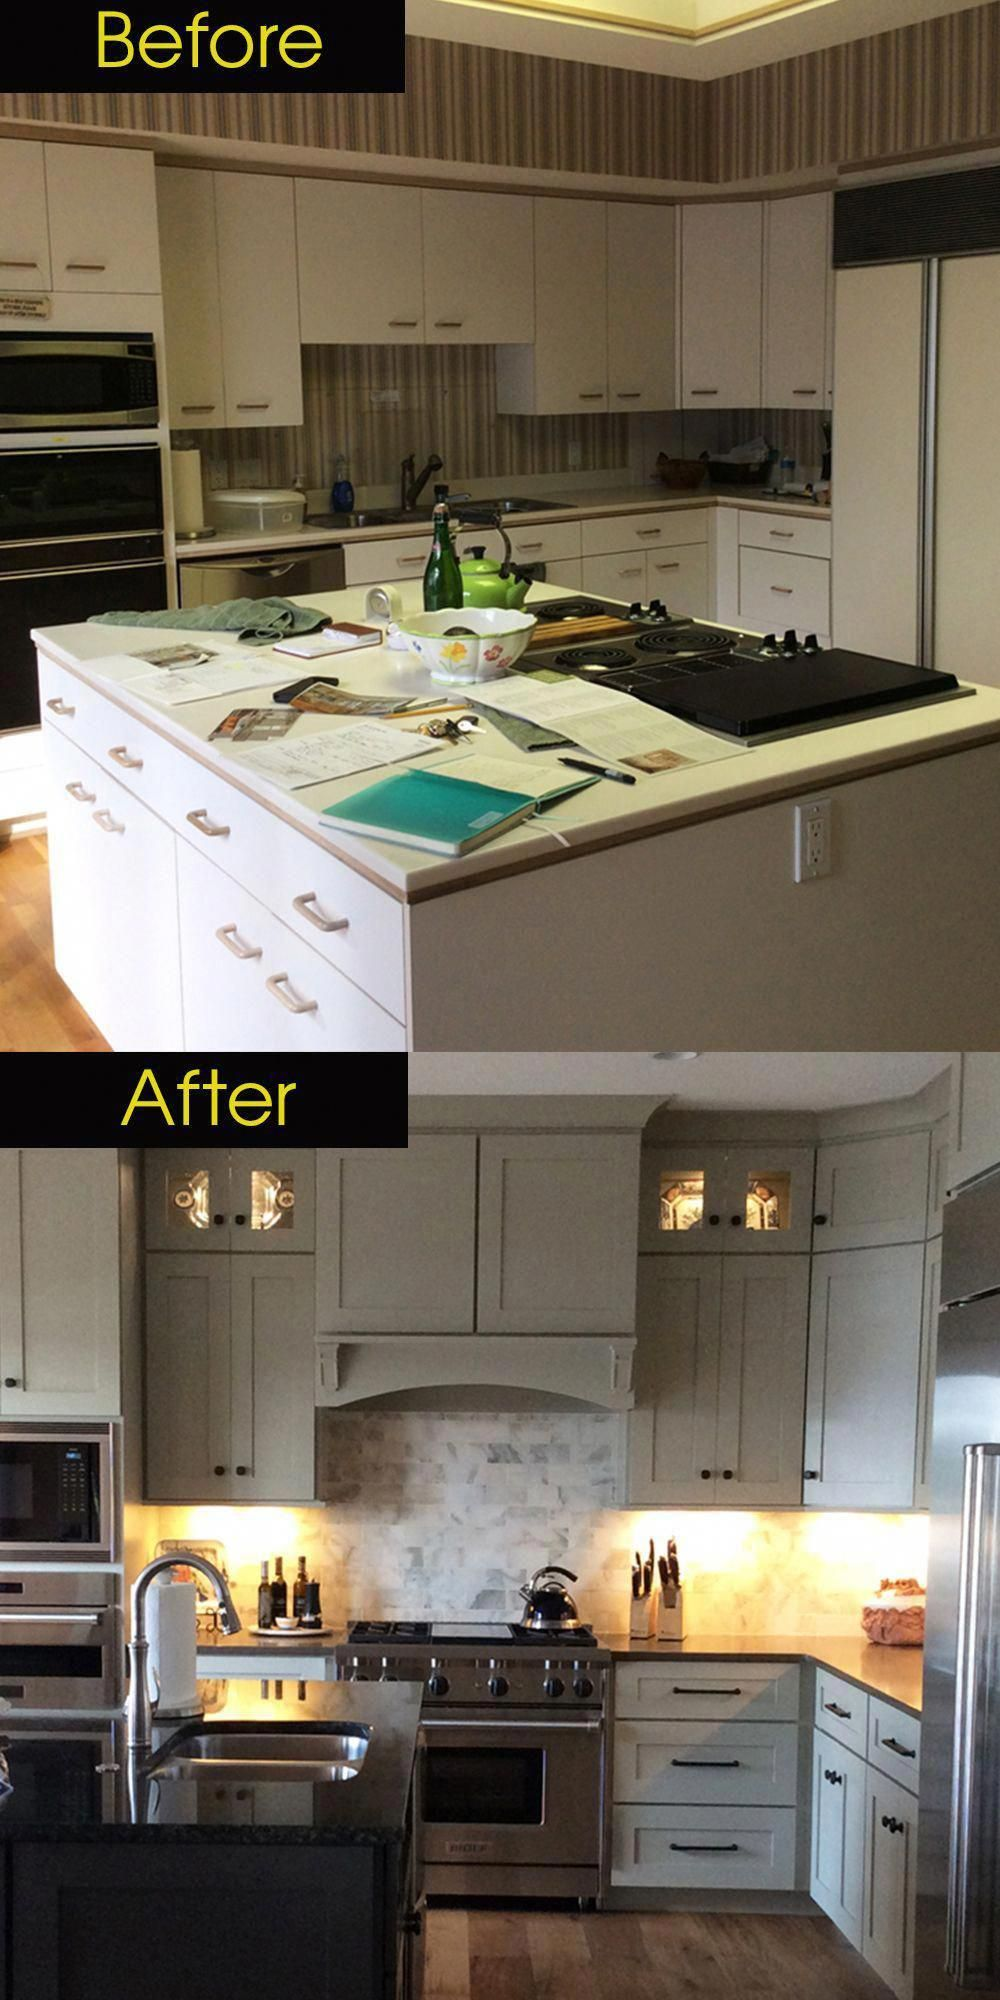 Kitchen Remodel Before And After Early 90s Kitchen Updated To A Modern Traditi Budget Kitchen Remodel Kitchen Remodel Small Kitchen Remodel Before And After